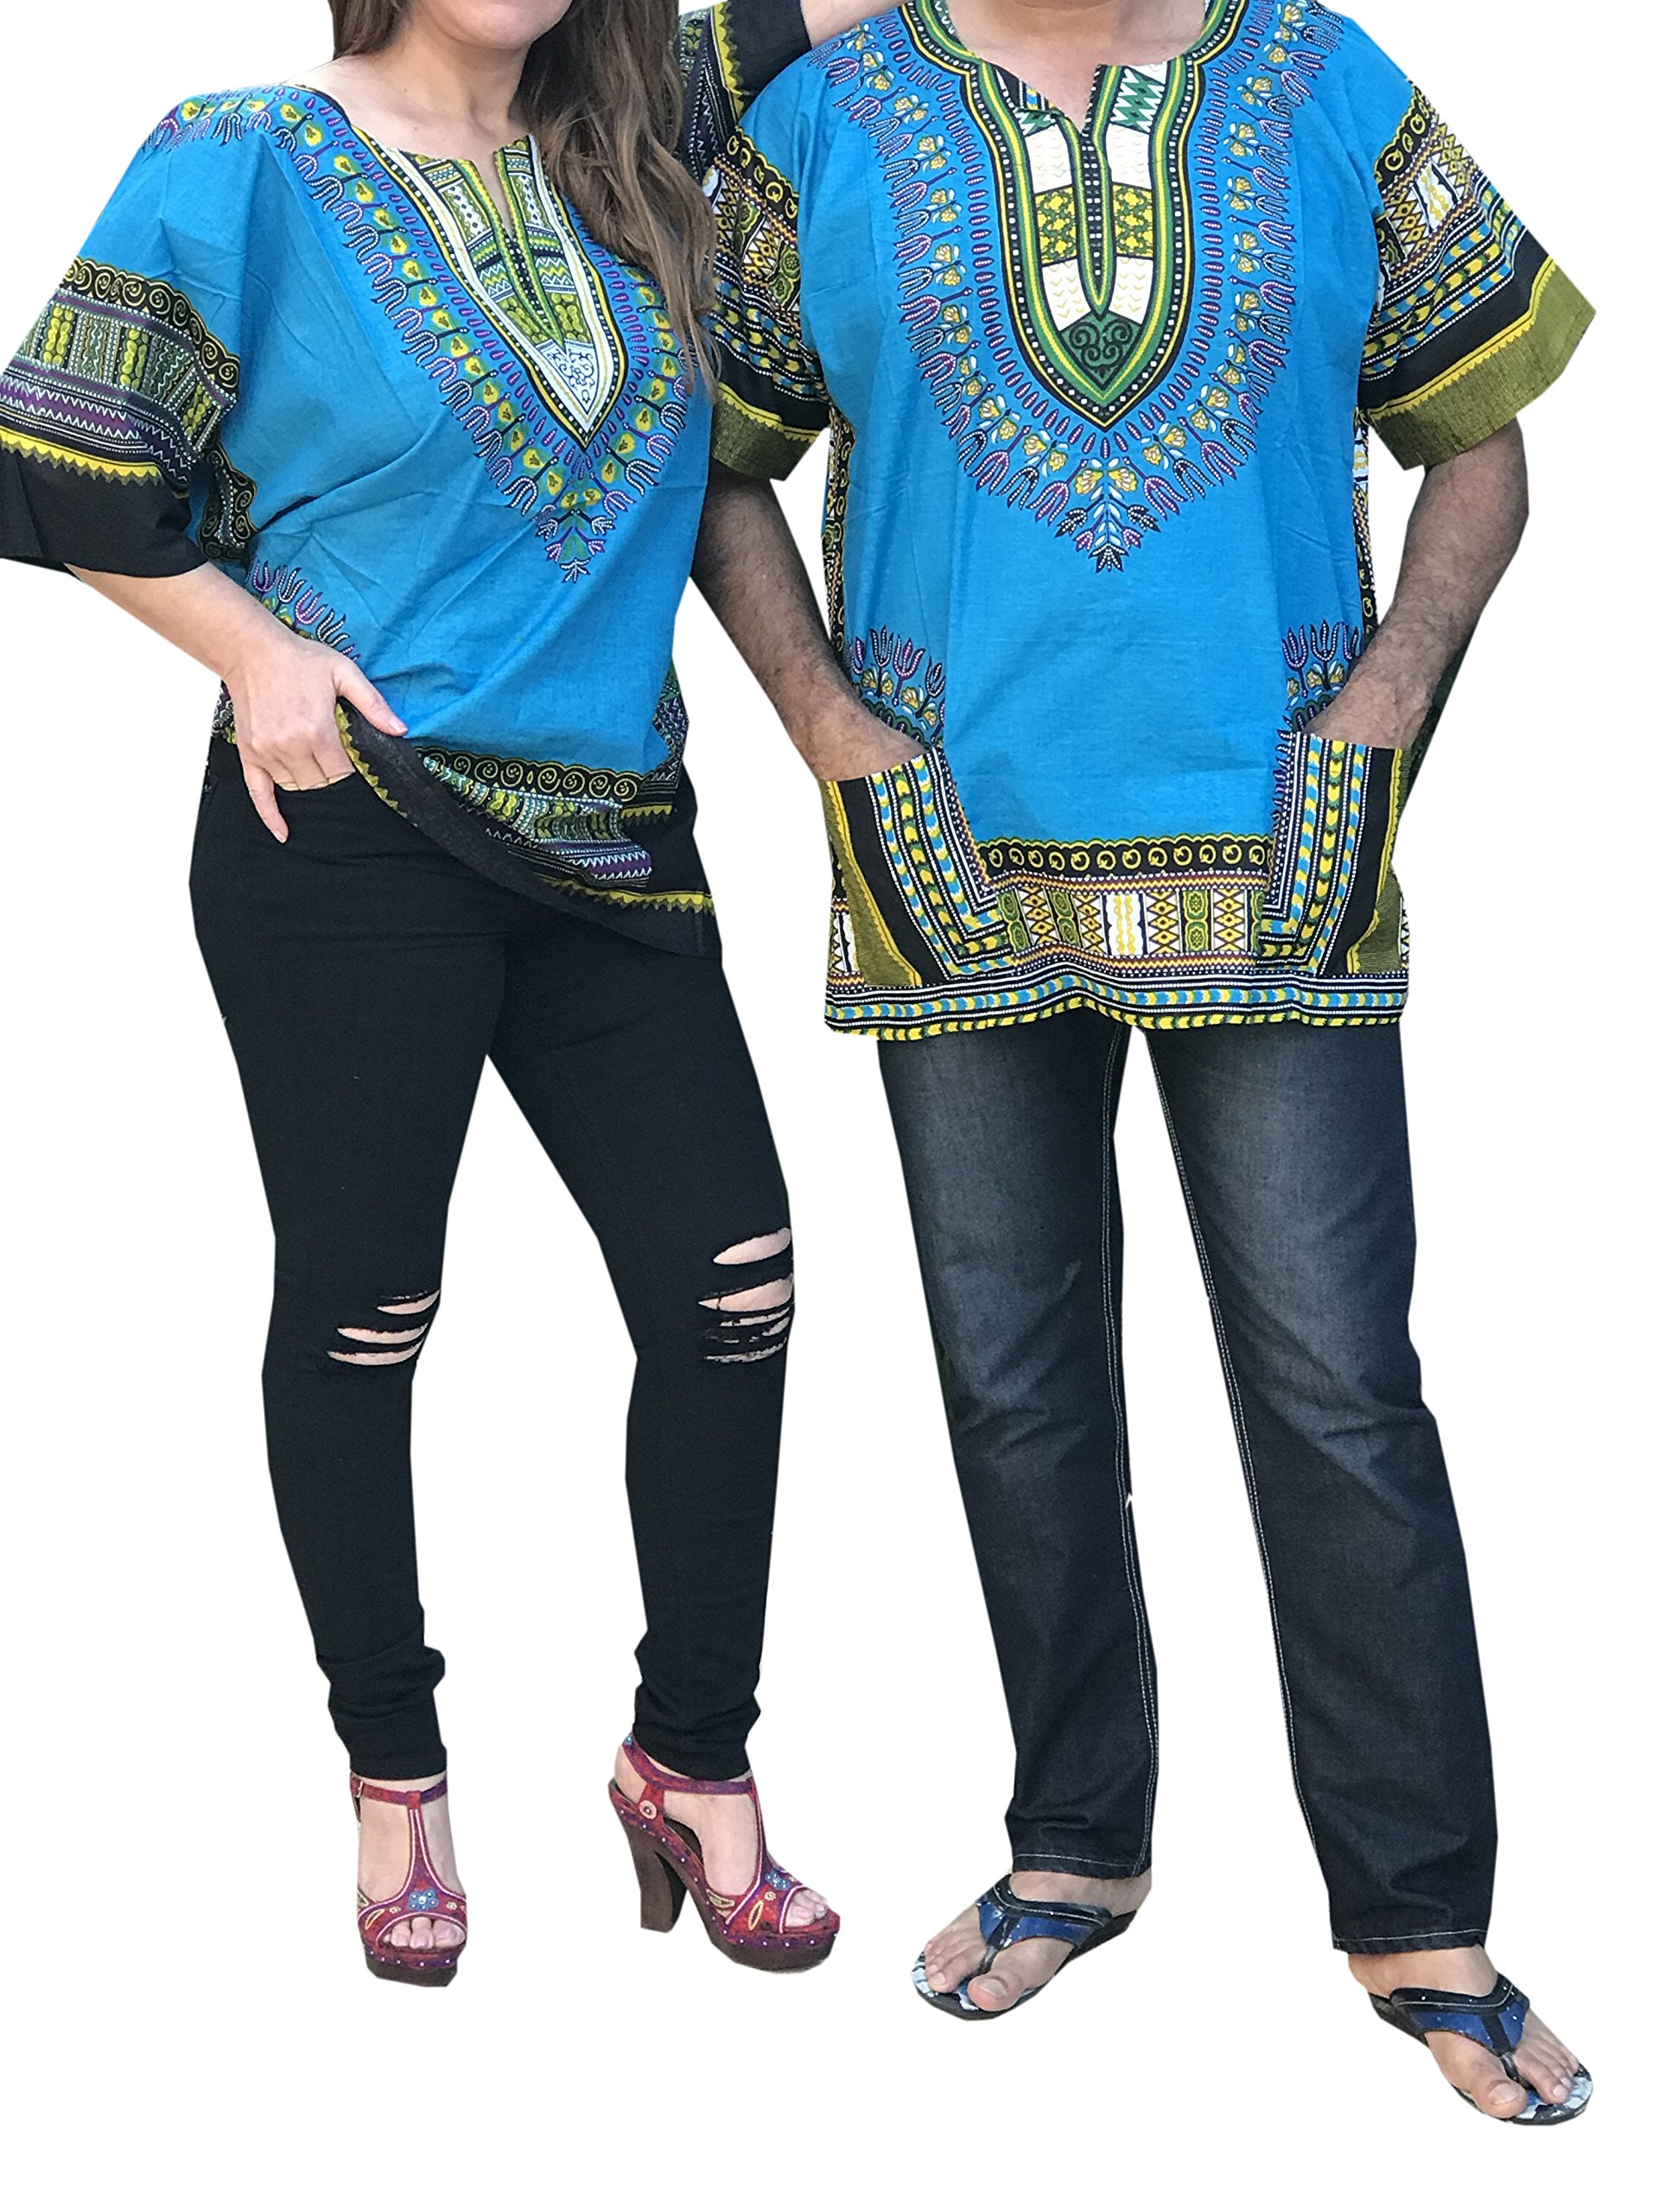 Dashiki Men Women Shirt African Hippie Vintage Top Tribal Blouse Caftan One Size (Turquoise/Blue)